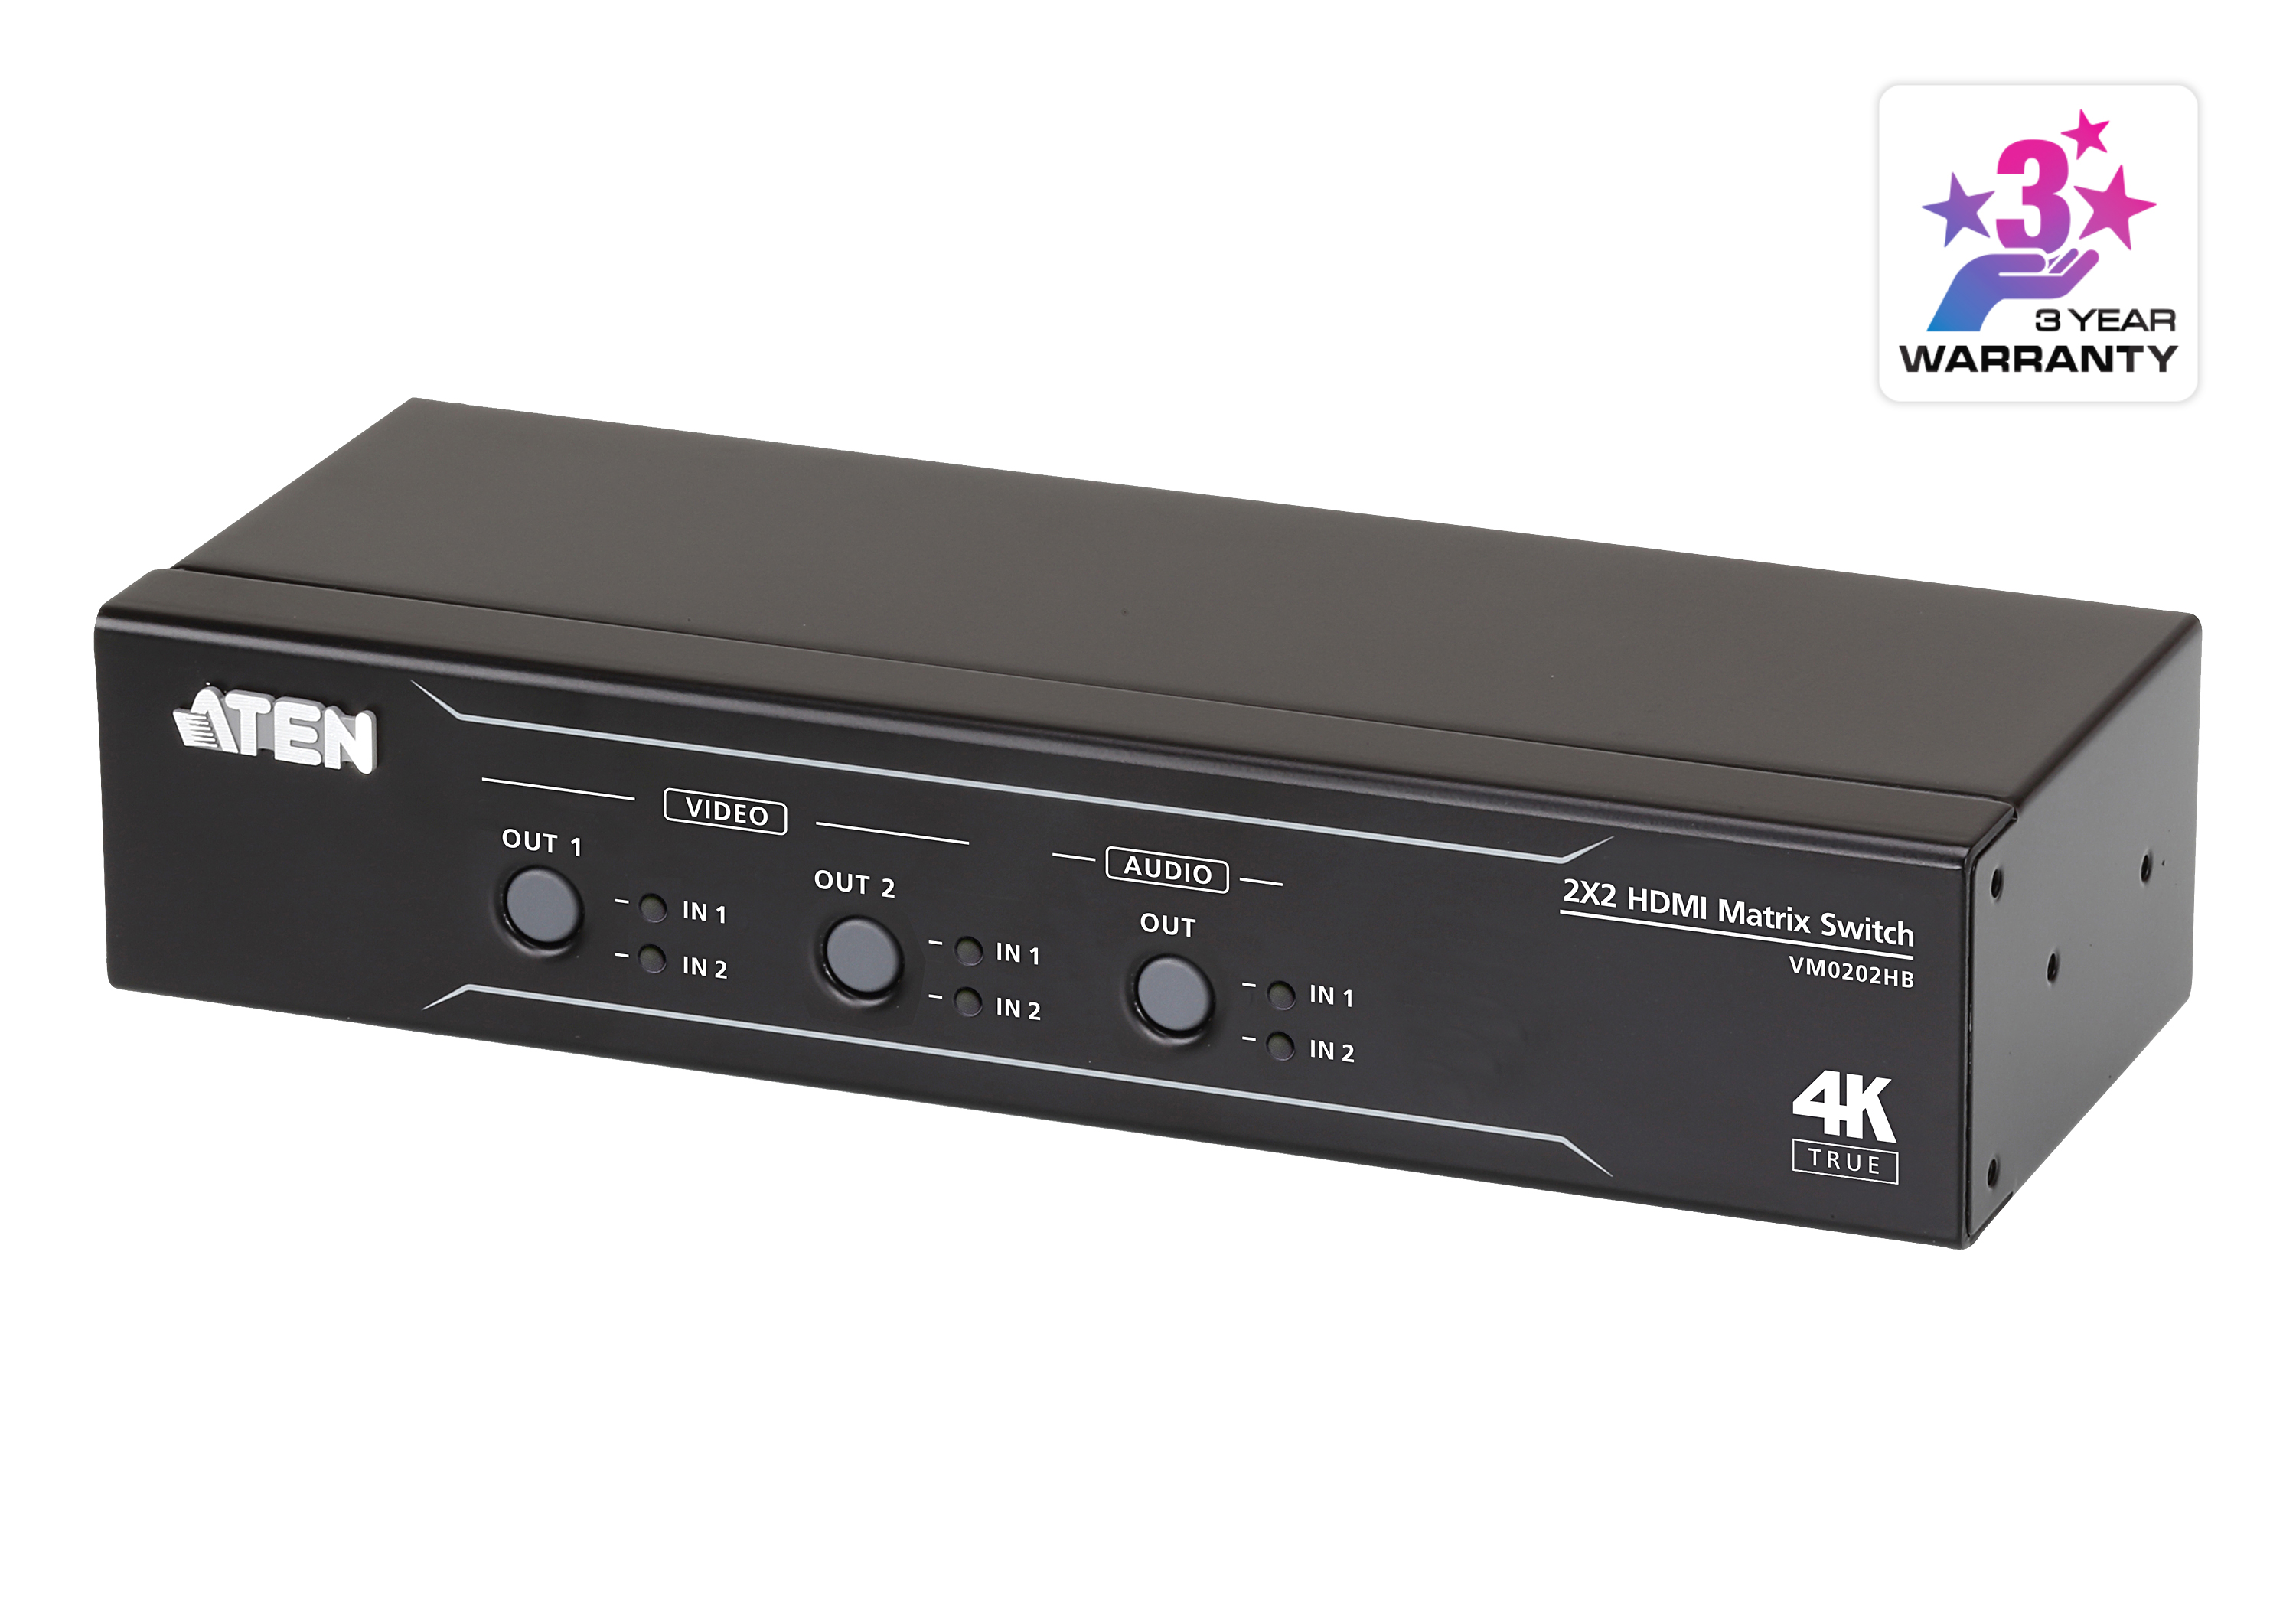 2 x 2 True 4K HDMI Matrix Switch with Audio De-Embedder-2